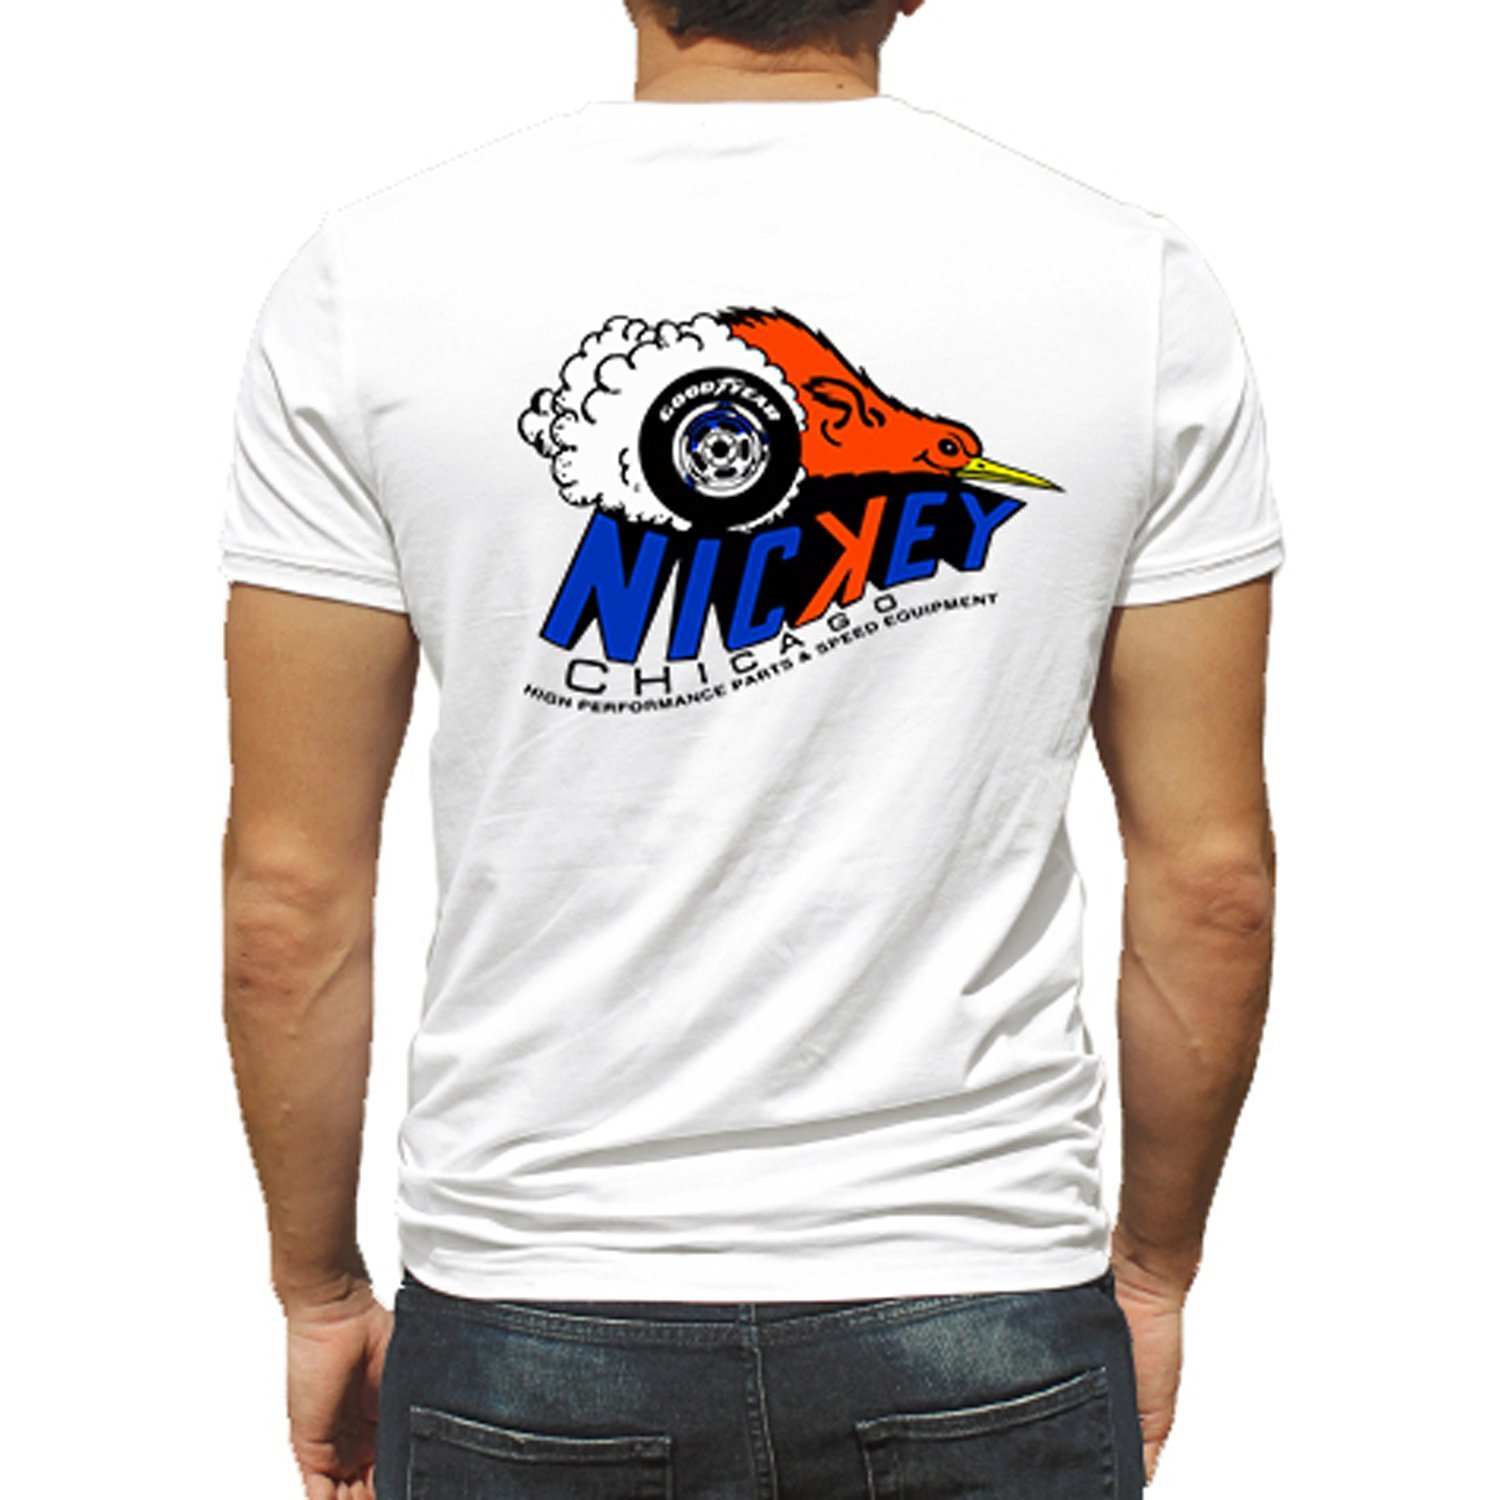 2018 New Summer Style Men Tee Shirt American Nickey Chicago Hot Rod Car Rat Nostalgia Drag Race Rac T-Shirt